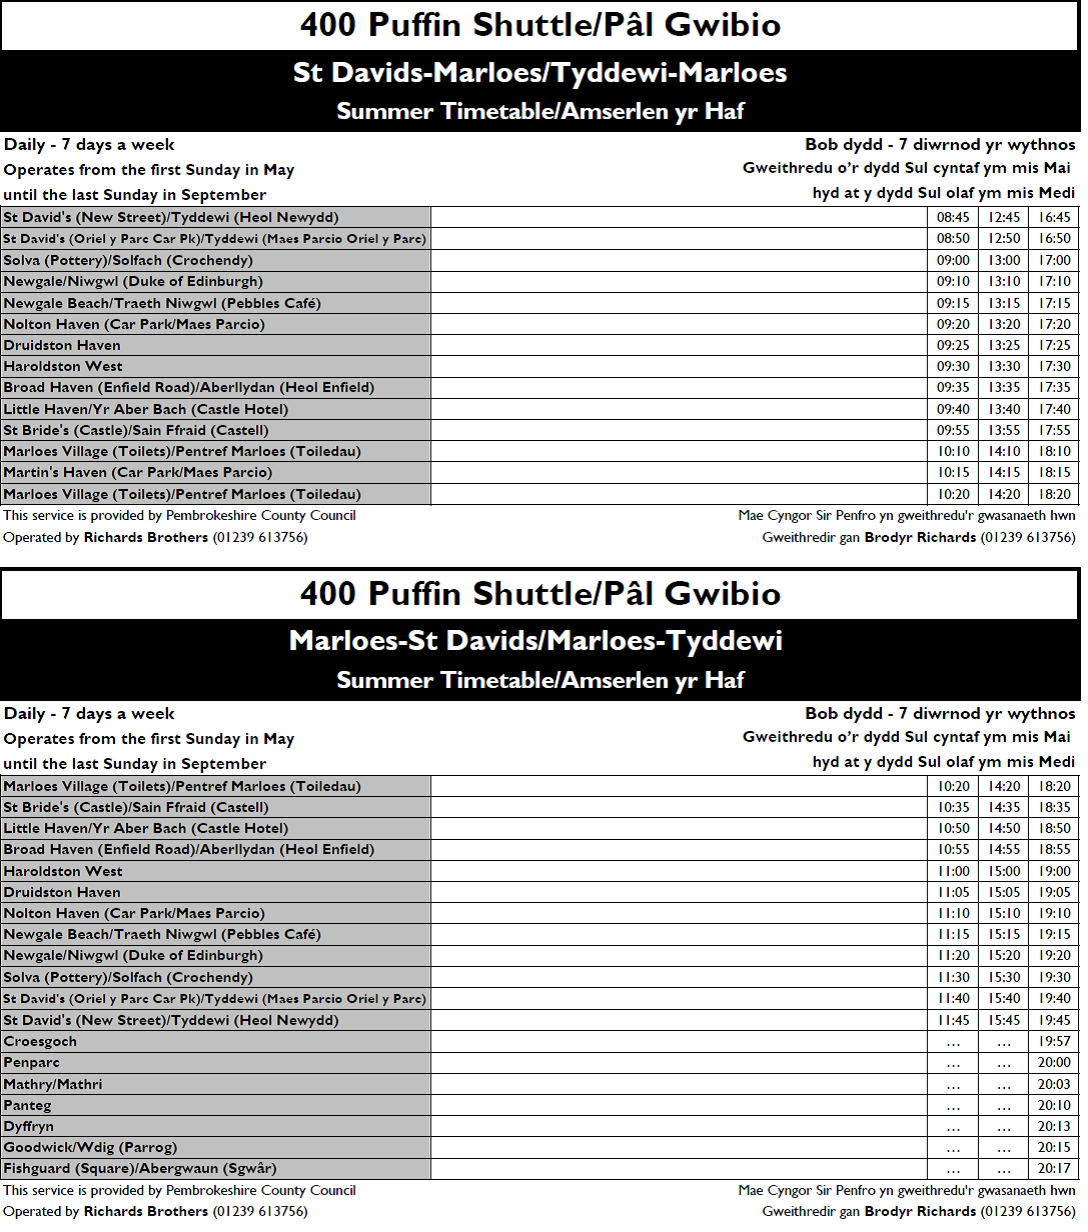 Puffin shuttle timetable